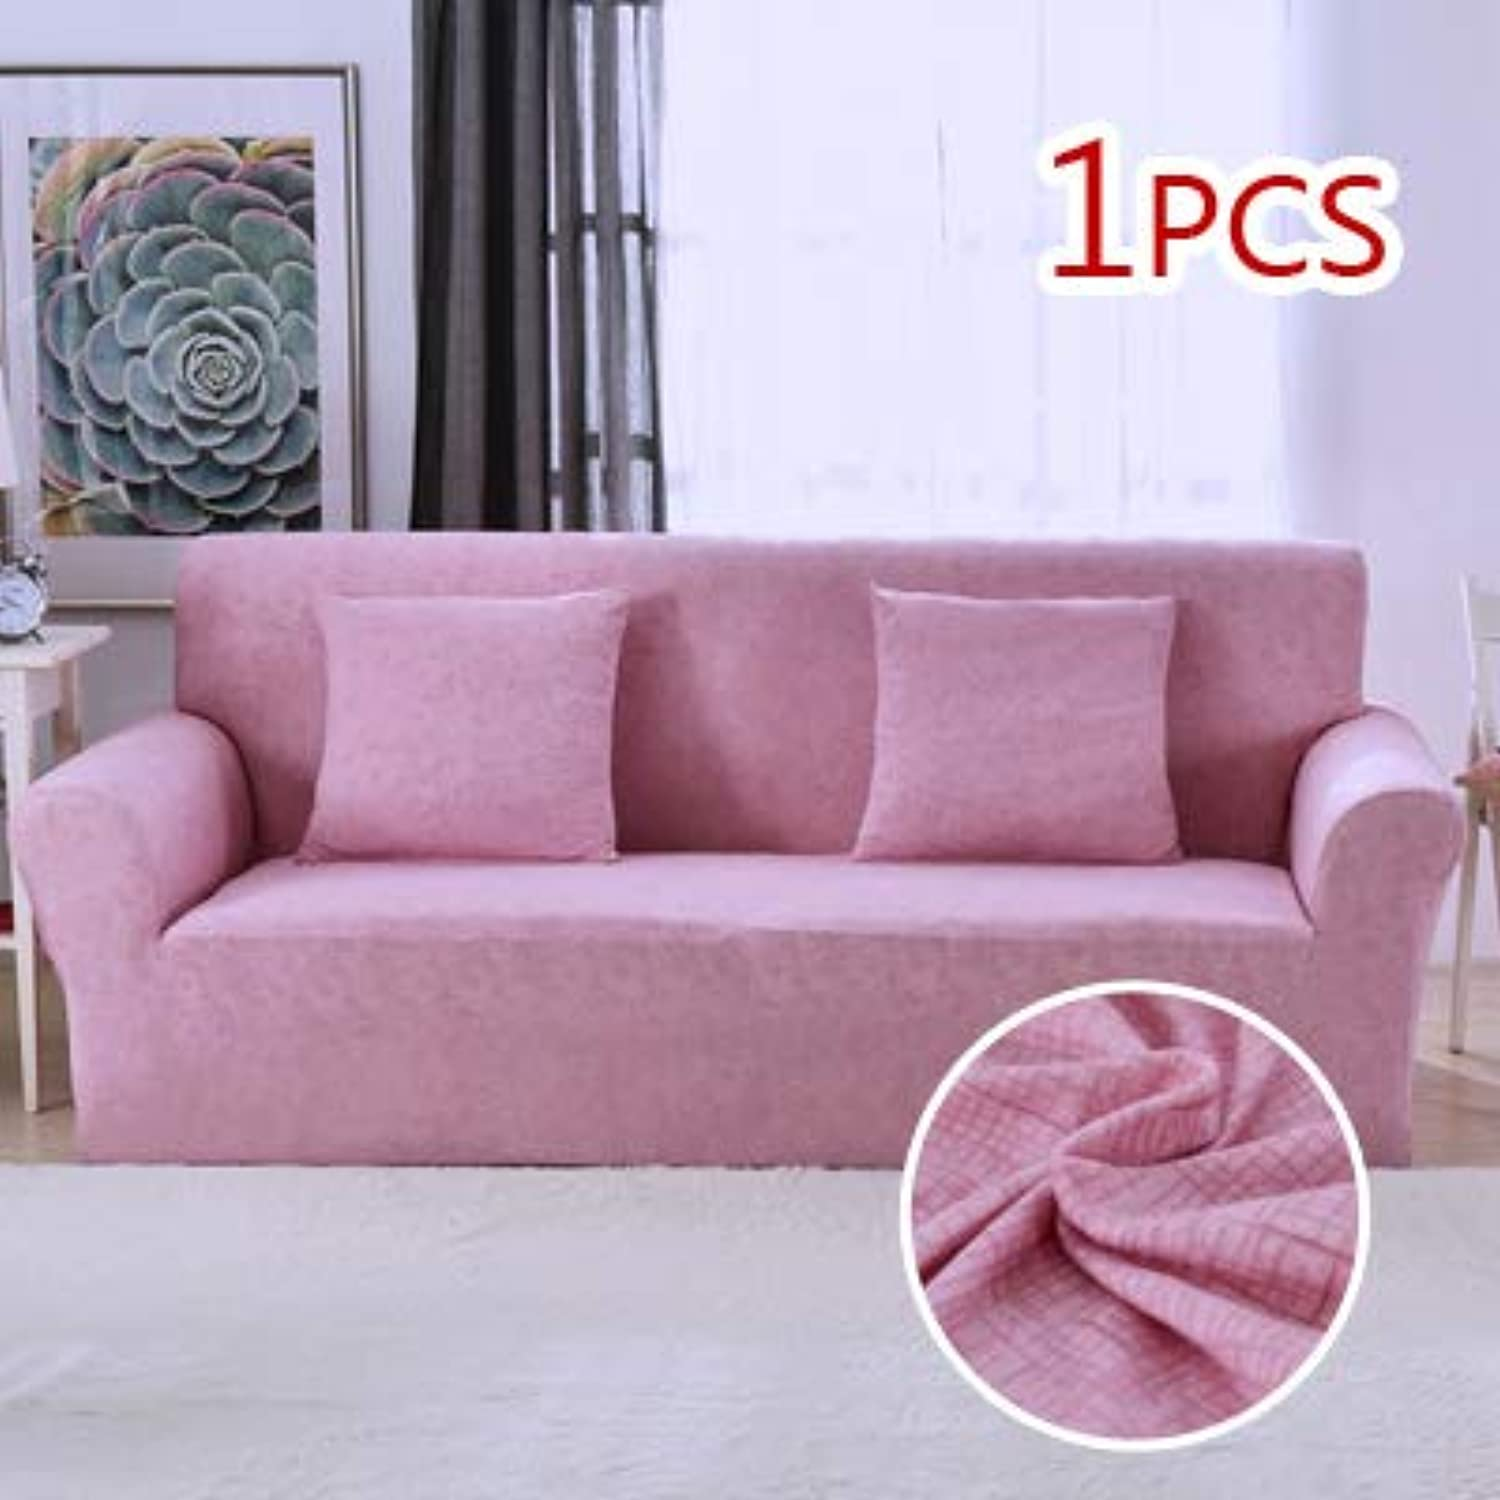 Cross Pattern Elastic Stretch Universal Sofa Covers Sectional Throw Couch Corner Cover Cases for Furniture Armchairs Home Decor   6, Two seat Sofa